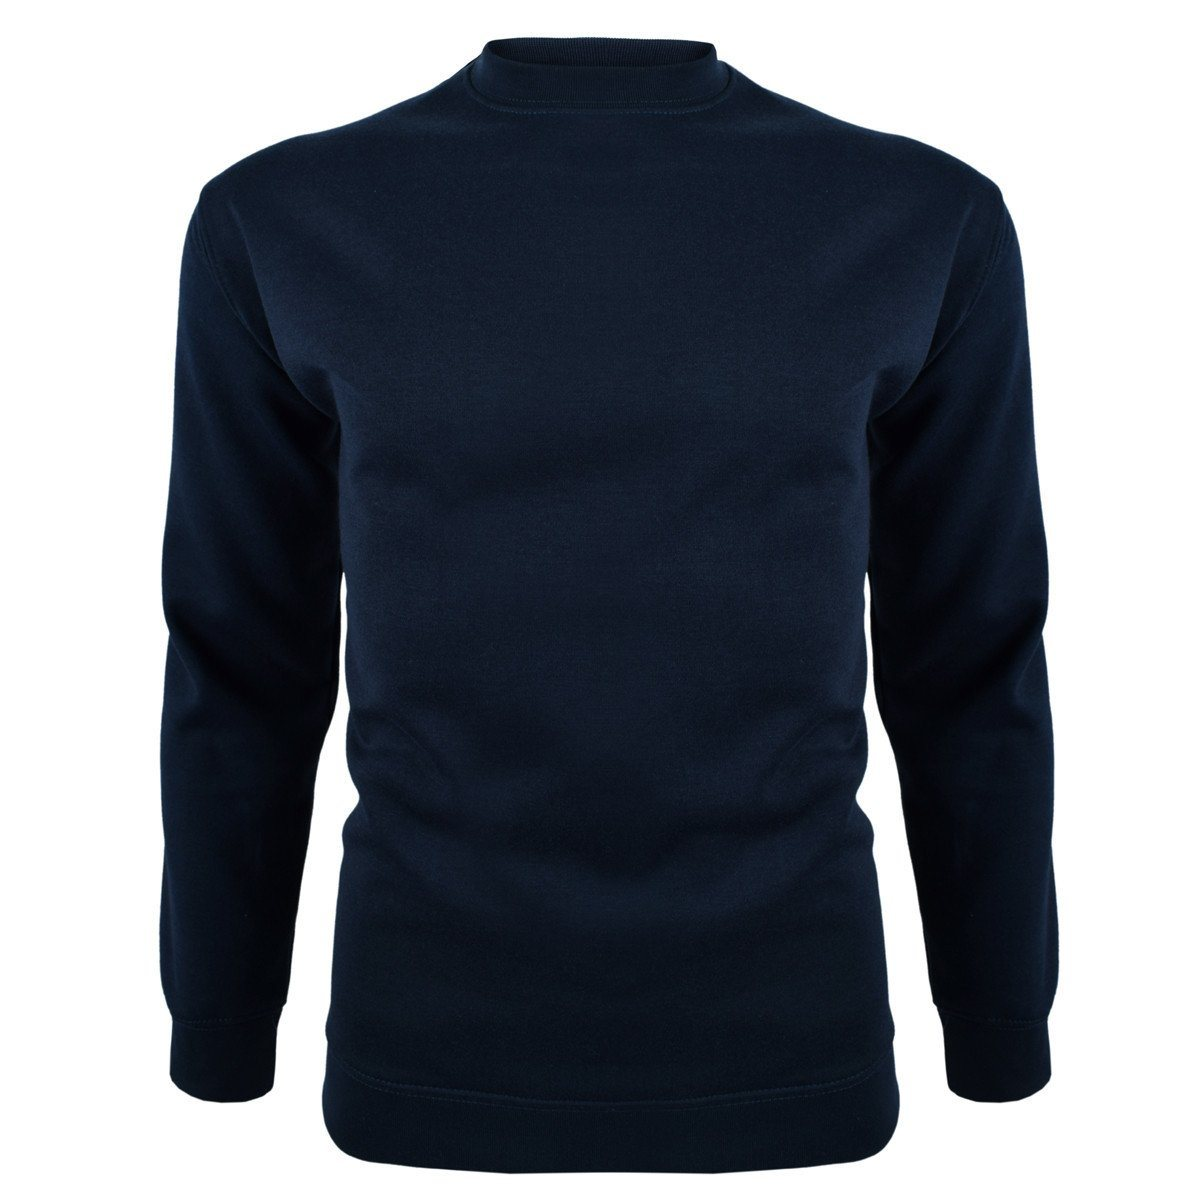 DCK Soontex Crew Neck Sweat Shirt Men's Sweat Shirt Image Navy 3XL